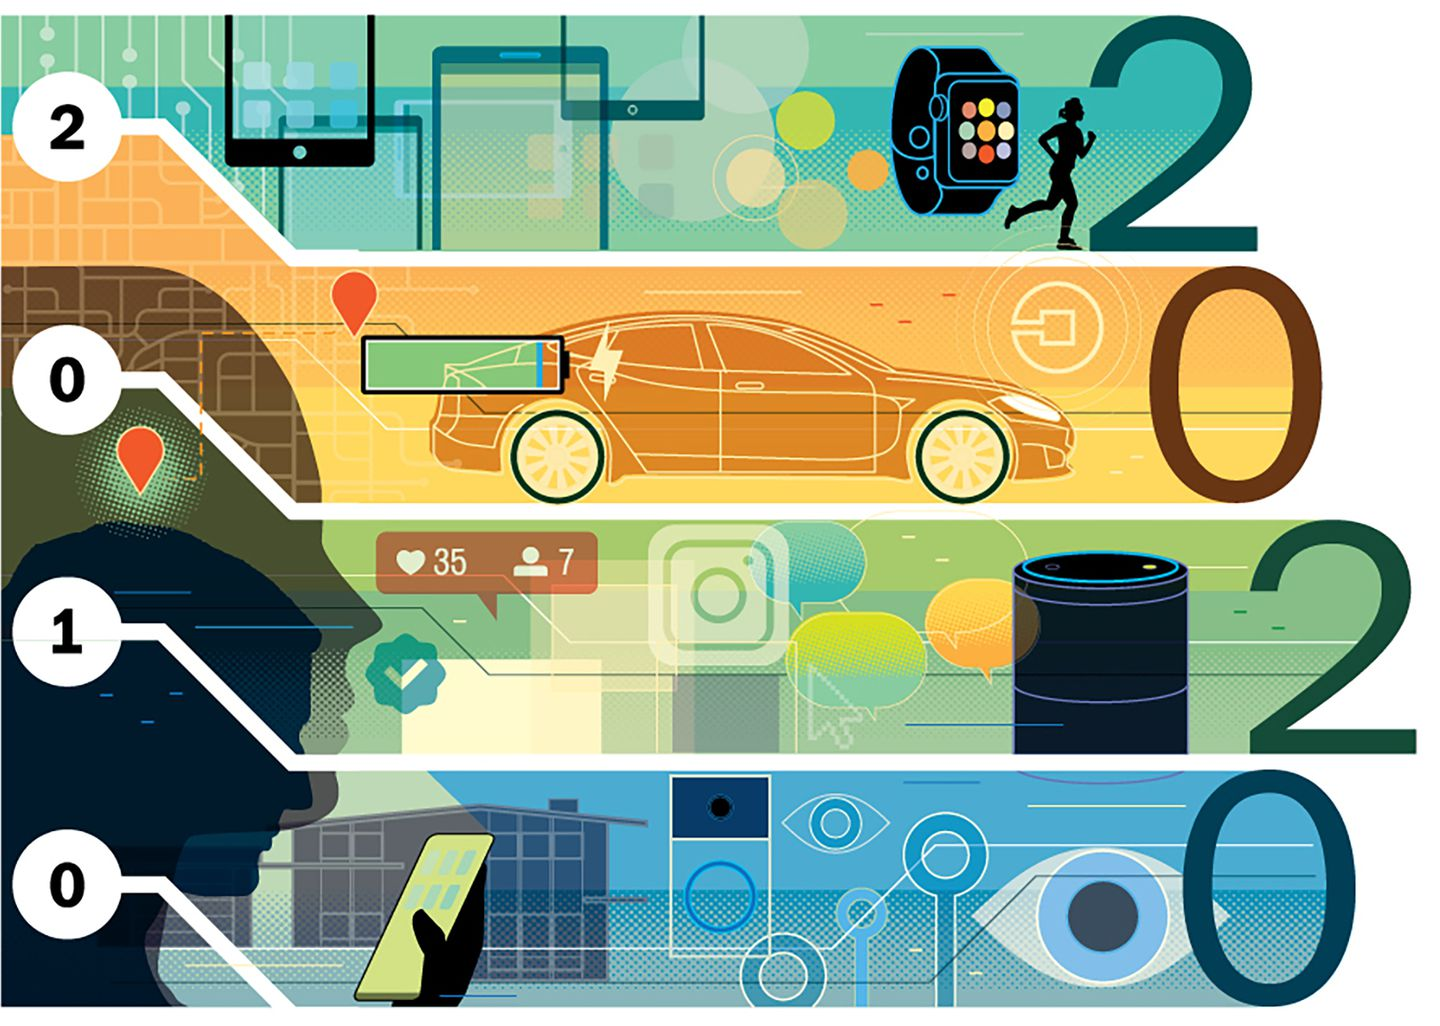 The most-influental technologies of the 2010s